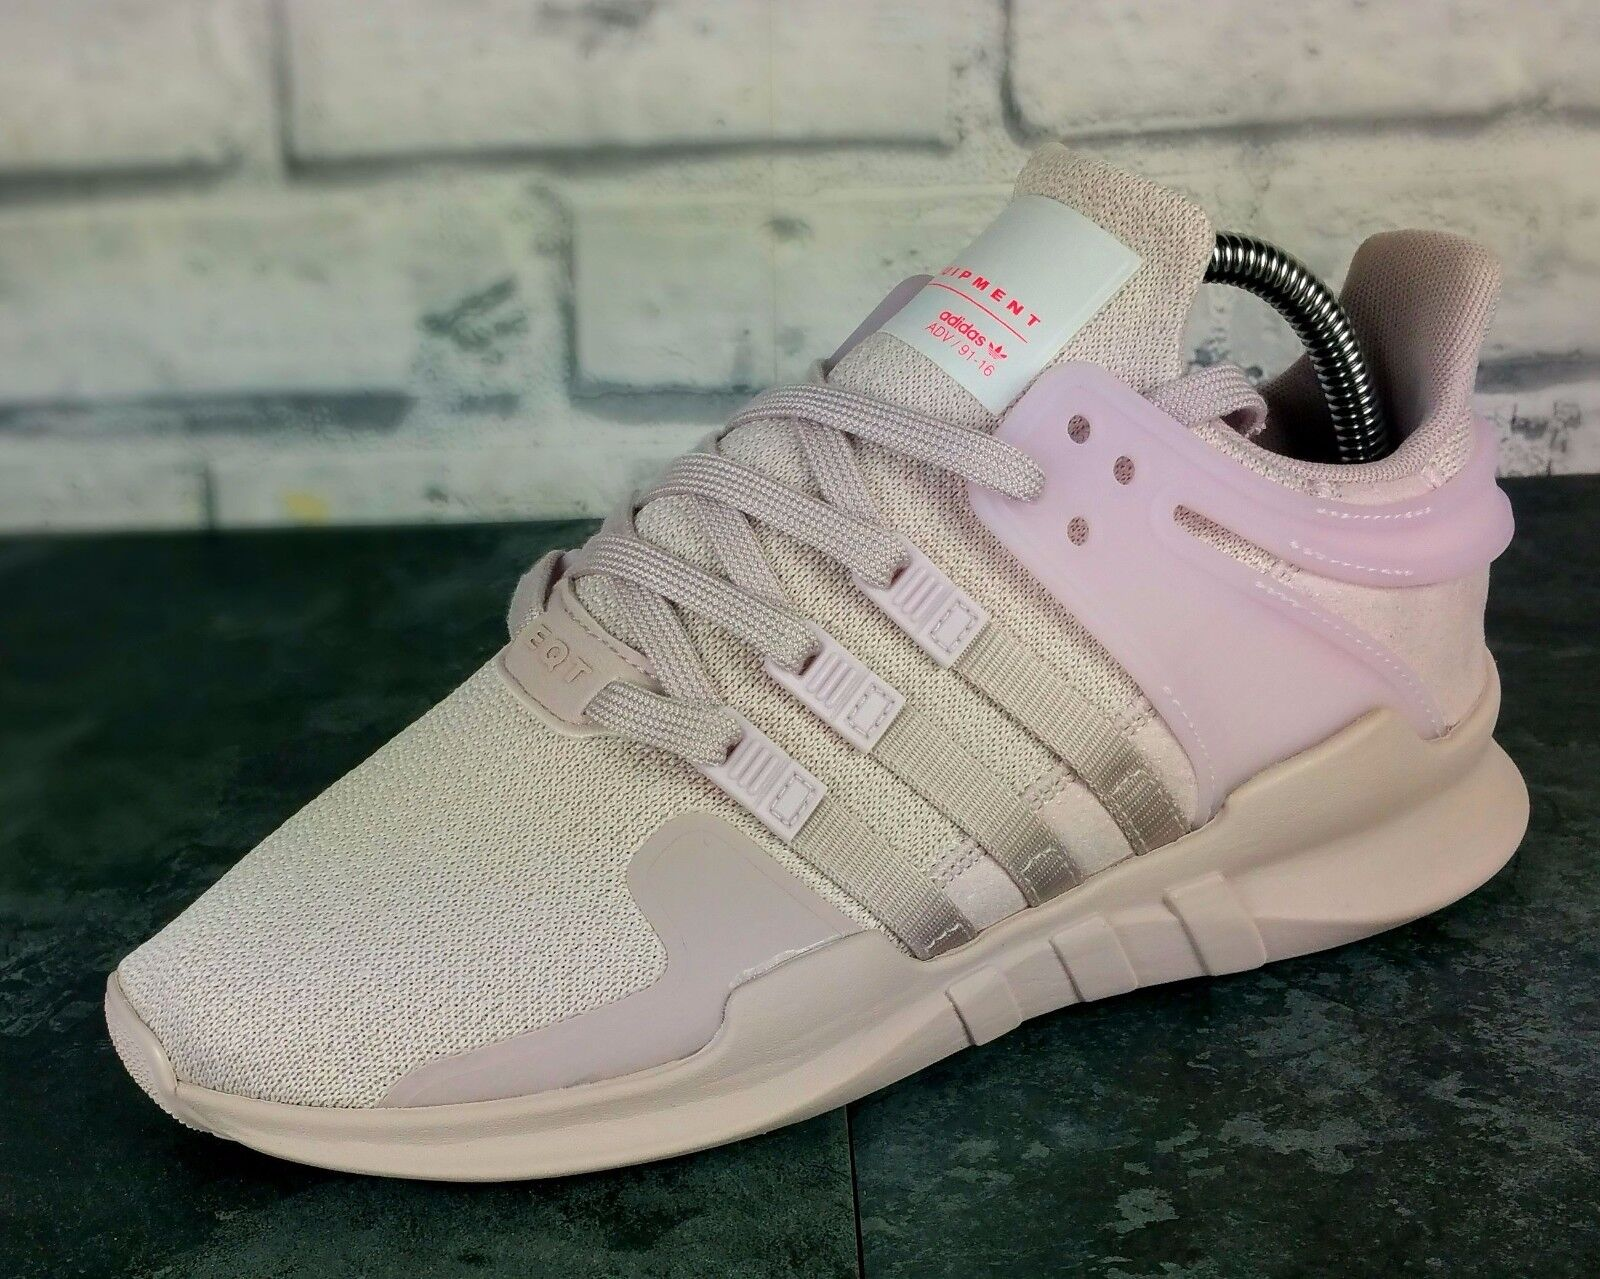 BNWB & Genuine Adidas EQT Equipment Support Adv ® Ice  Violet  Trainers All La tailles